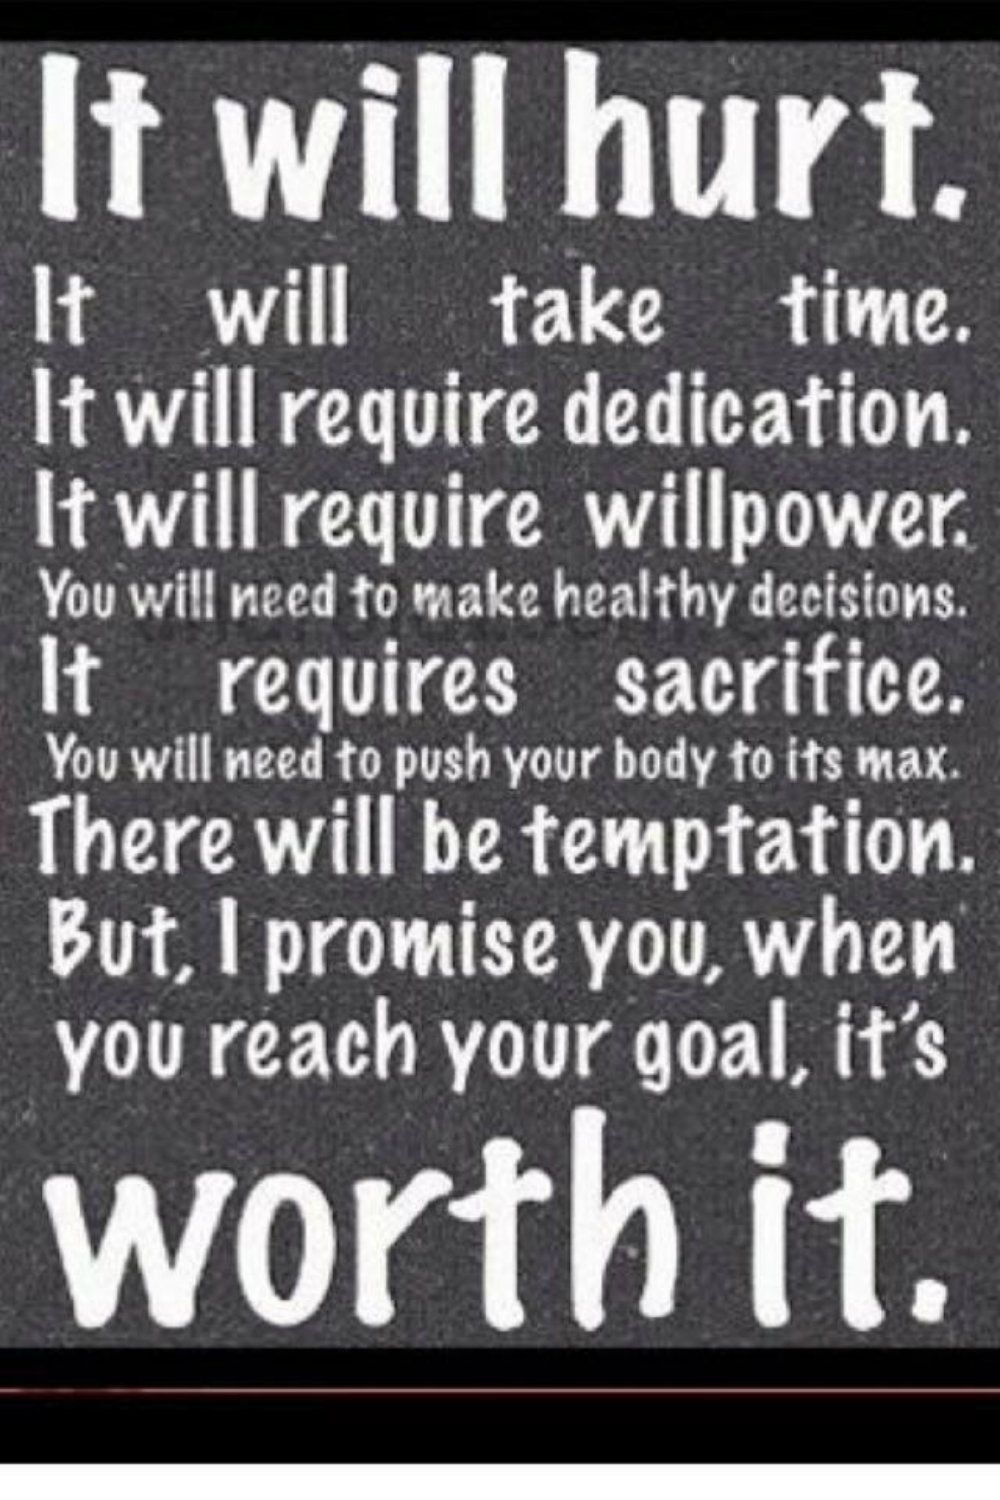 Motivational Quotes For My Notebook Frugal Thrifty Book Review Quotpaleo Workouts Dummiesquot By Pat Flynn Exercise What Do You To Motivate Yourself Kick Your Butt Into Gear Or Make Sure Dont Veer Off The Path Me I Have A Where Would